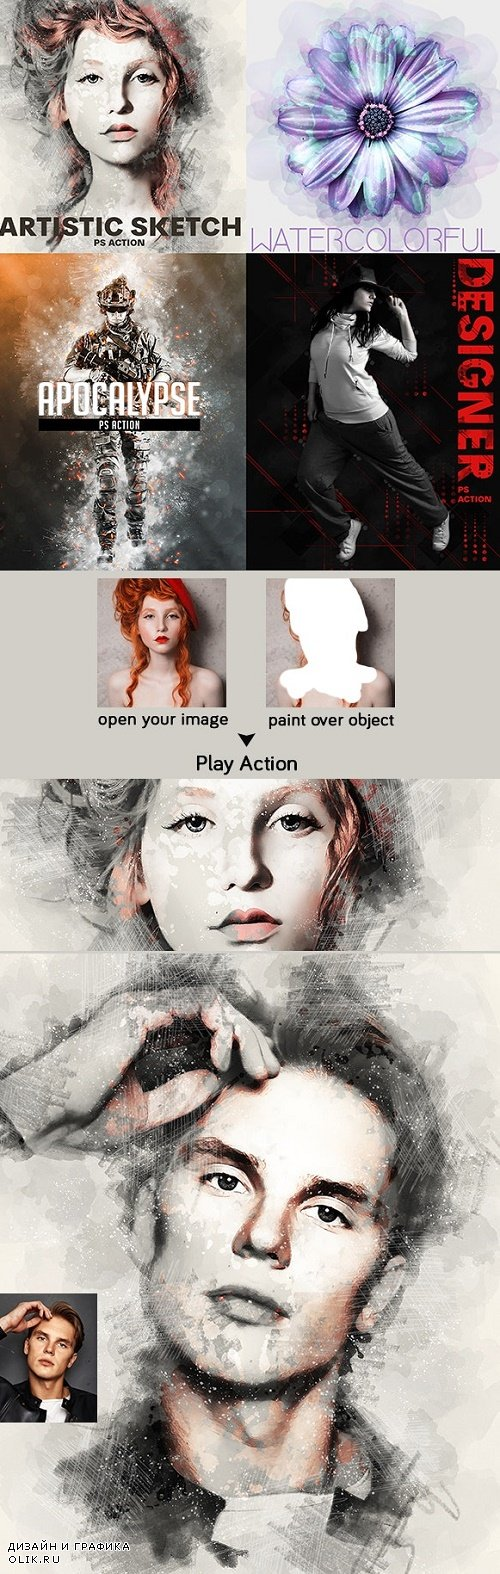 4 In One Pro Photoshop Actions V2 Bundle 23925243